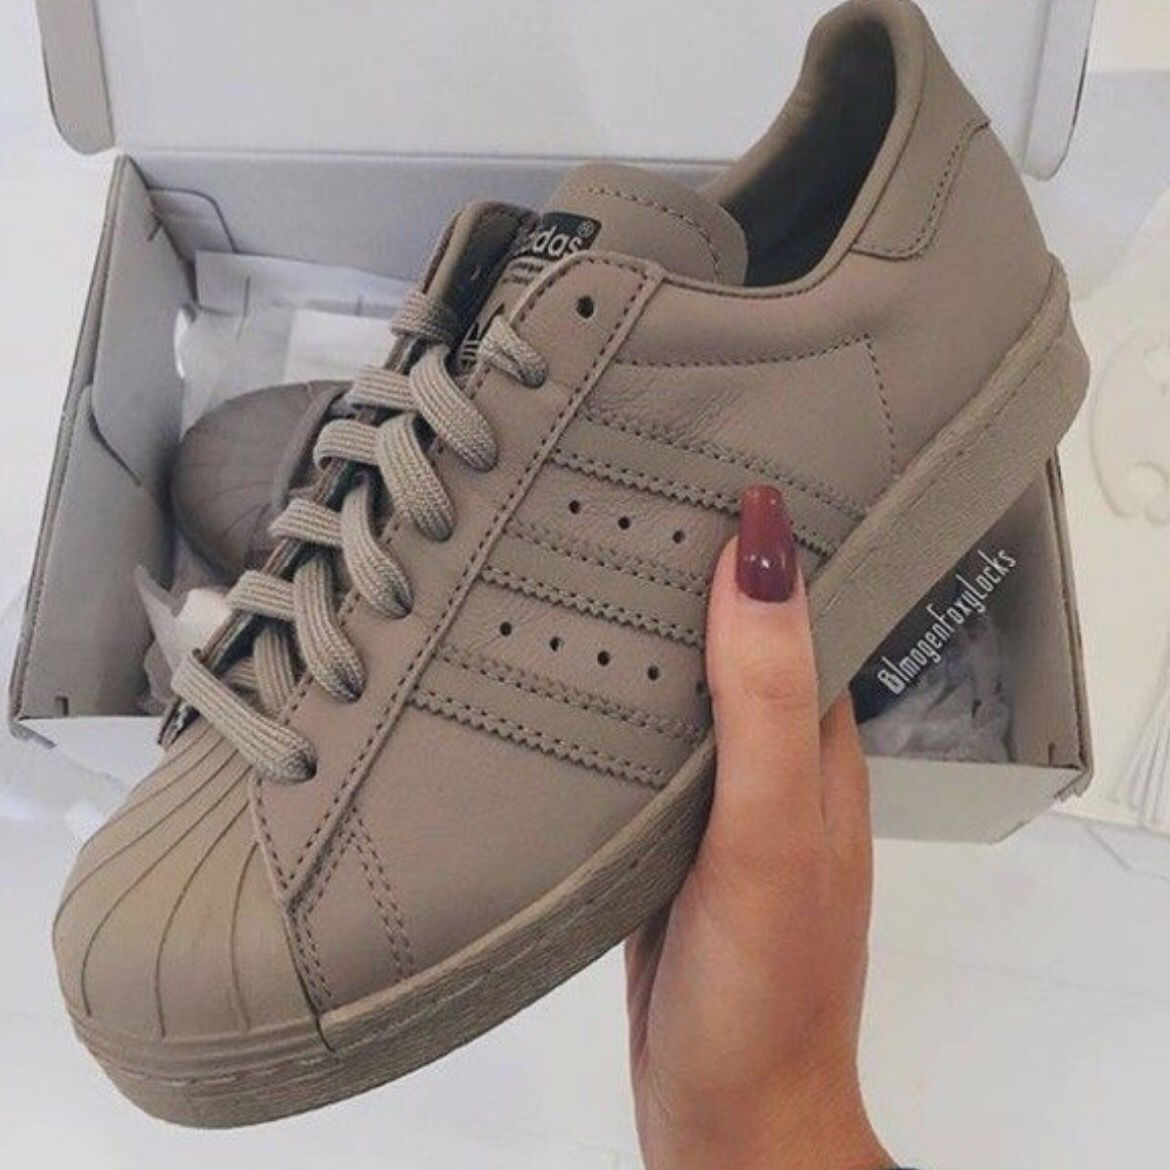 We all need these nude addidas | Fashion